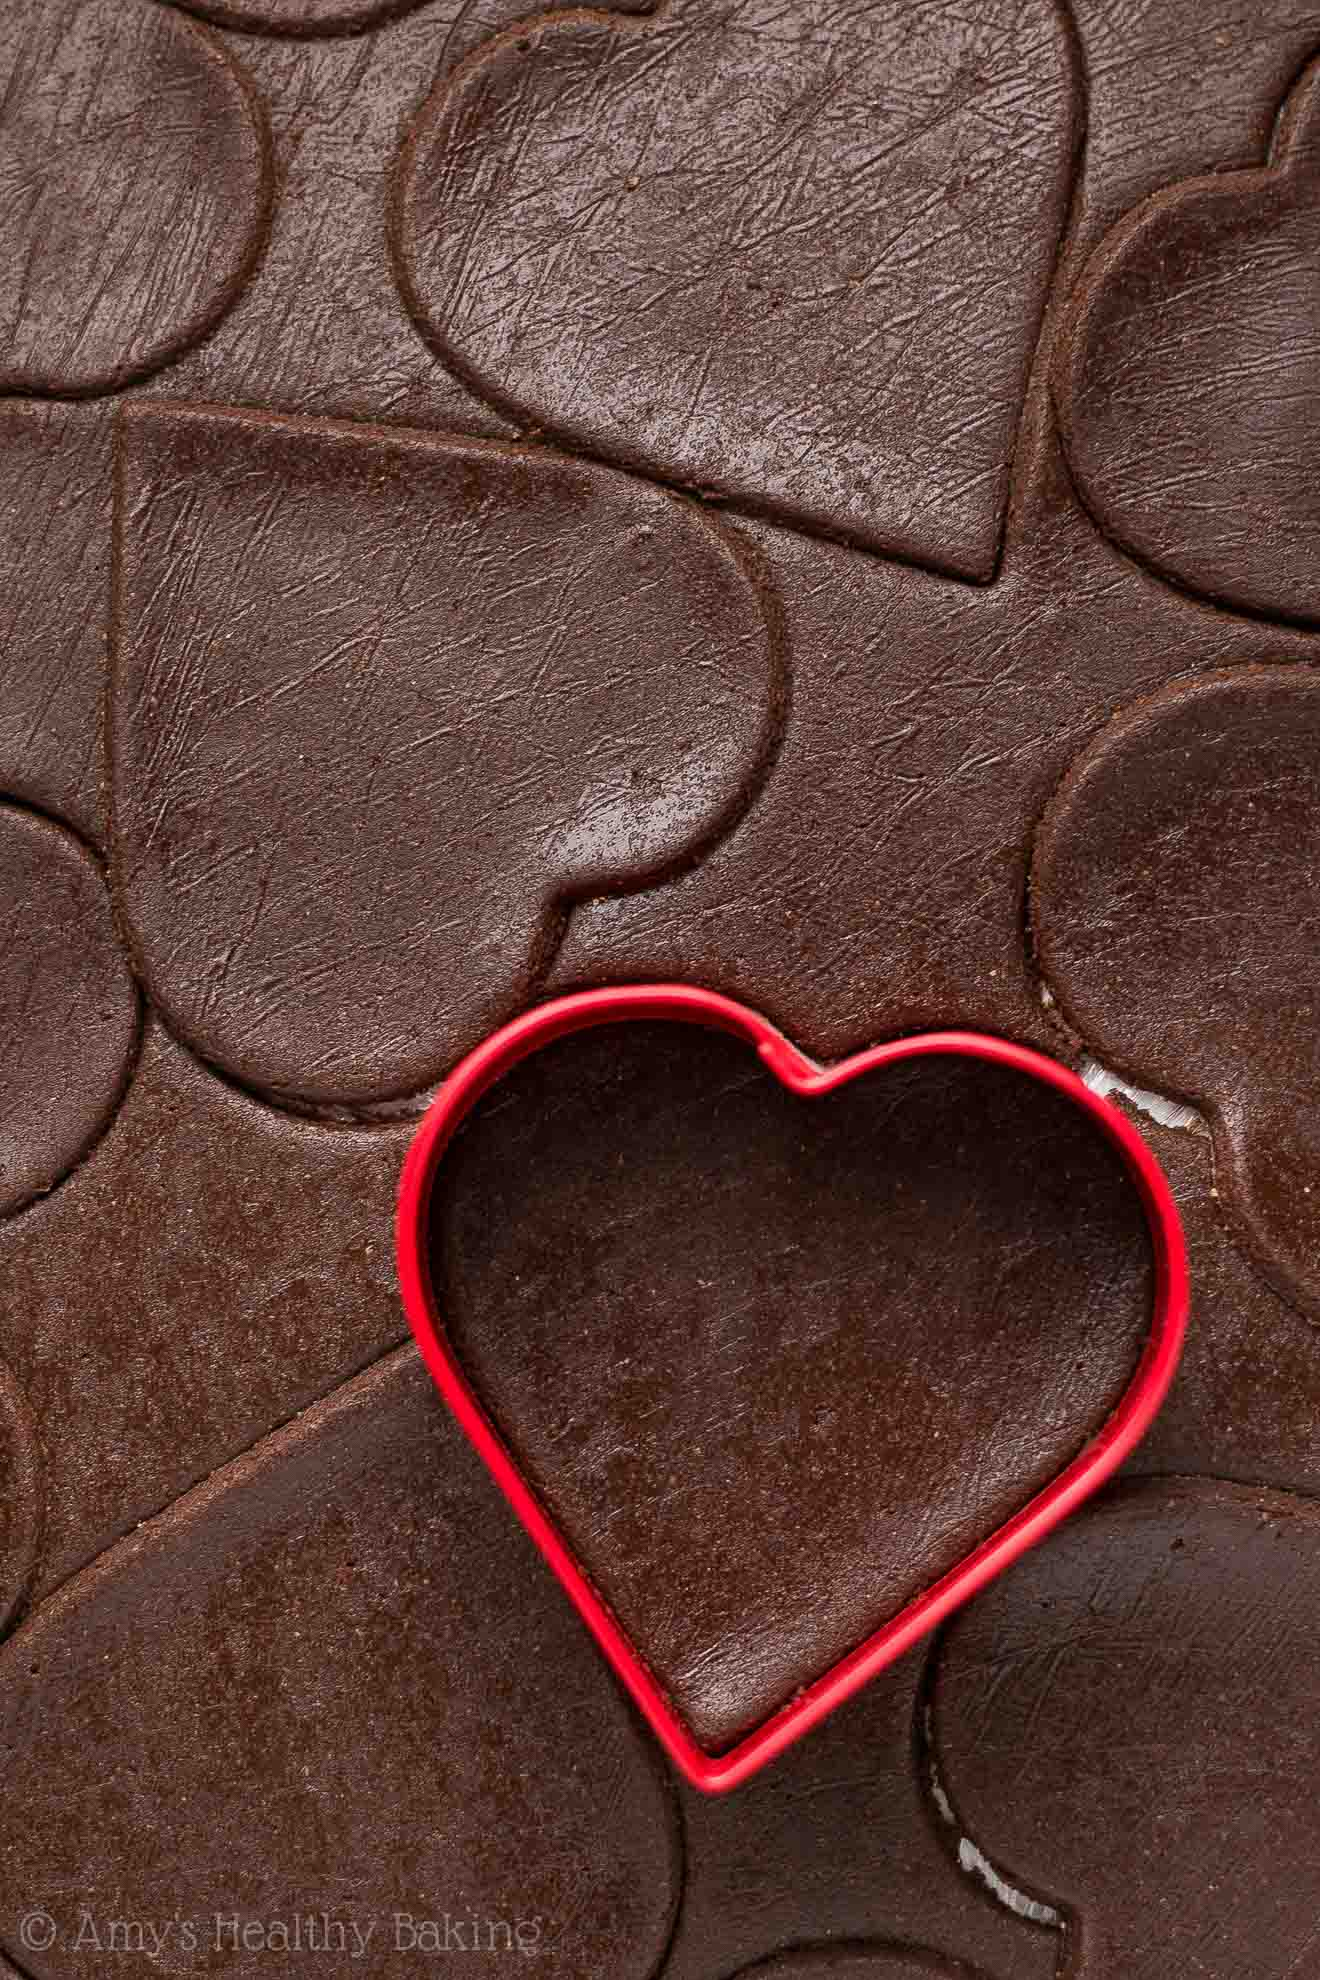 Chocolate sugar cookie dough that's been rolled out and cut into heart shapes with a red cookie cutter